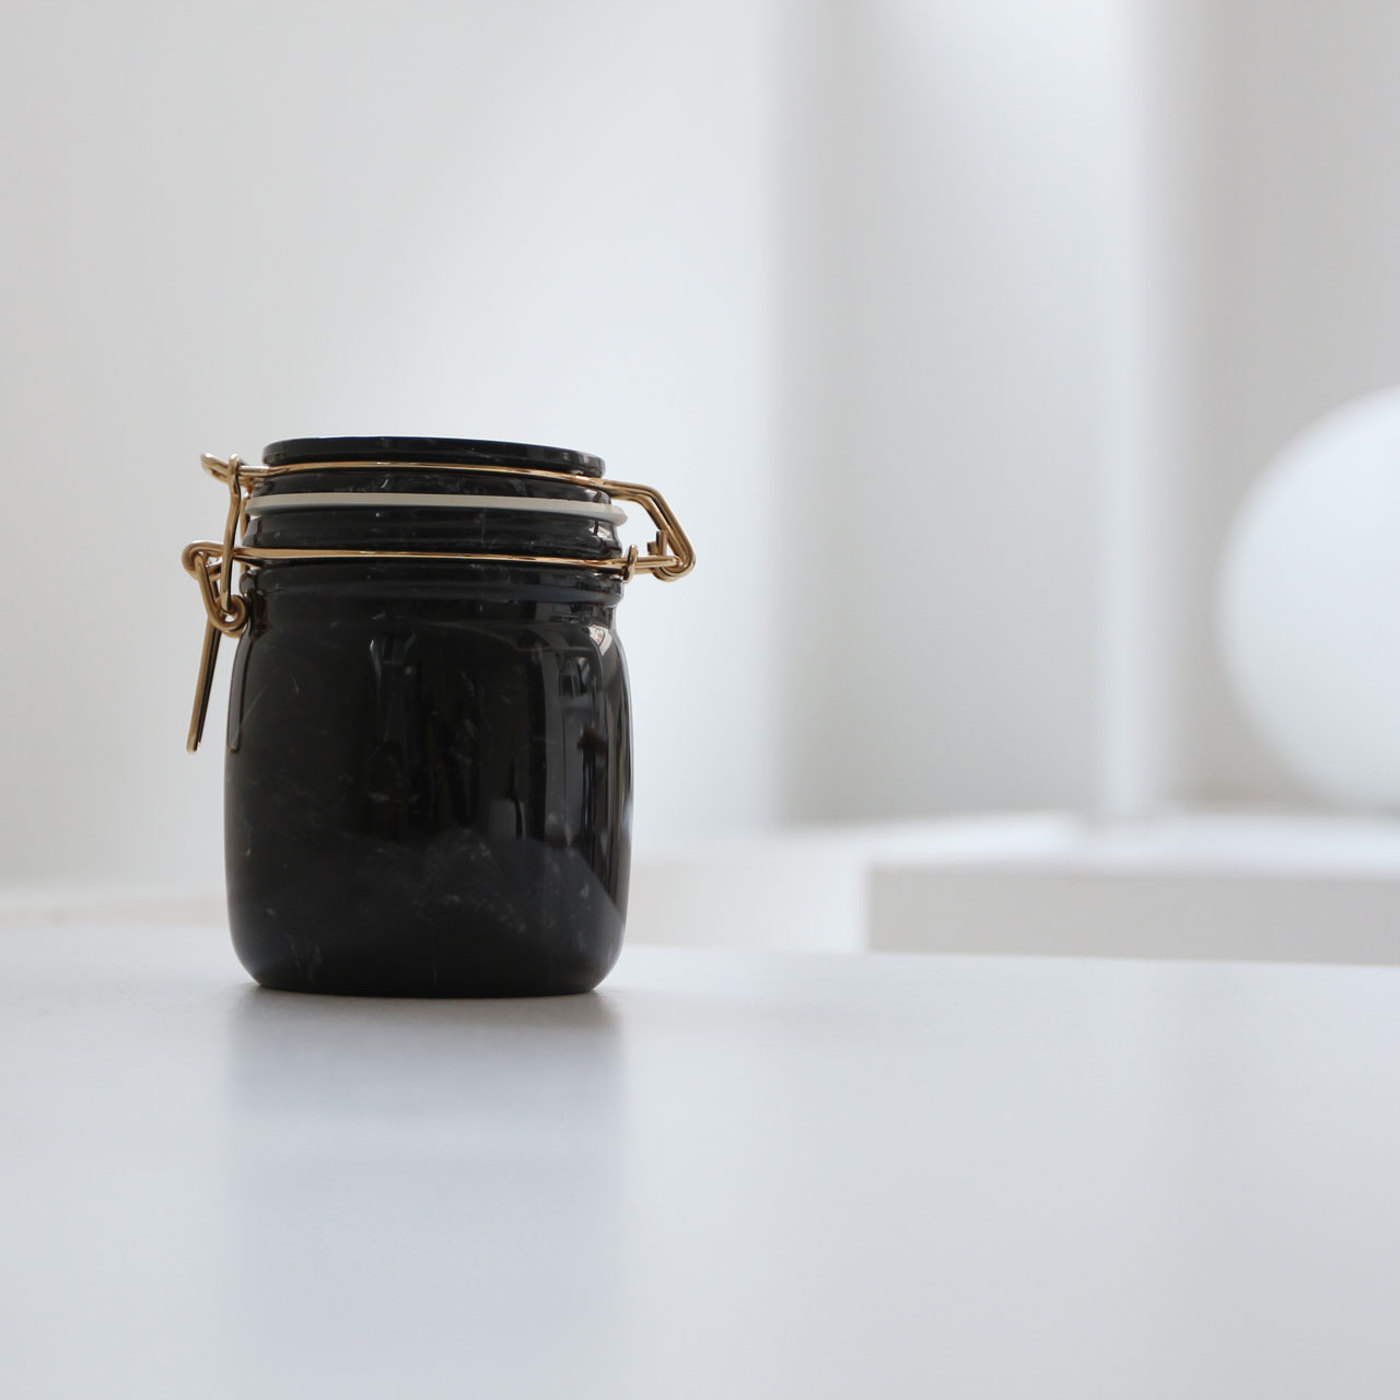 14. Mr Marble jar by Lorenza Bozzoli for Spazio Pontaccio 1400